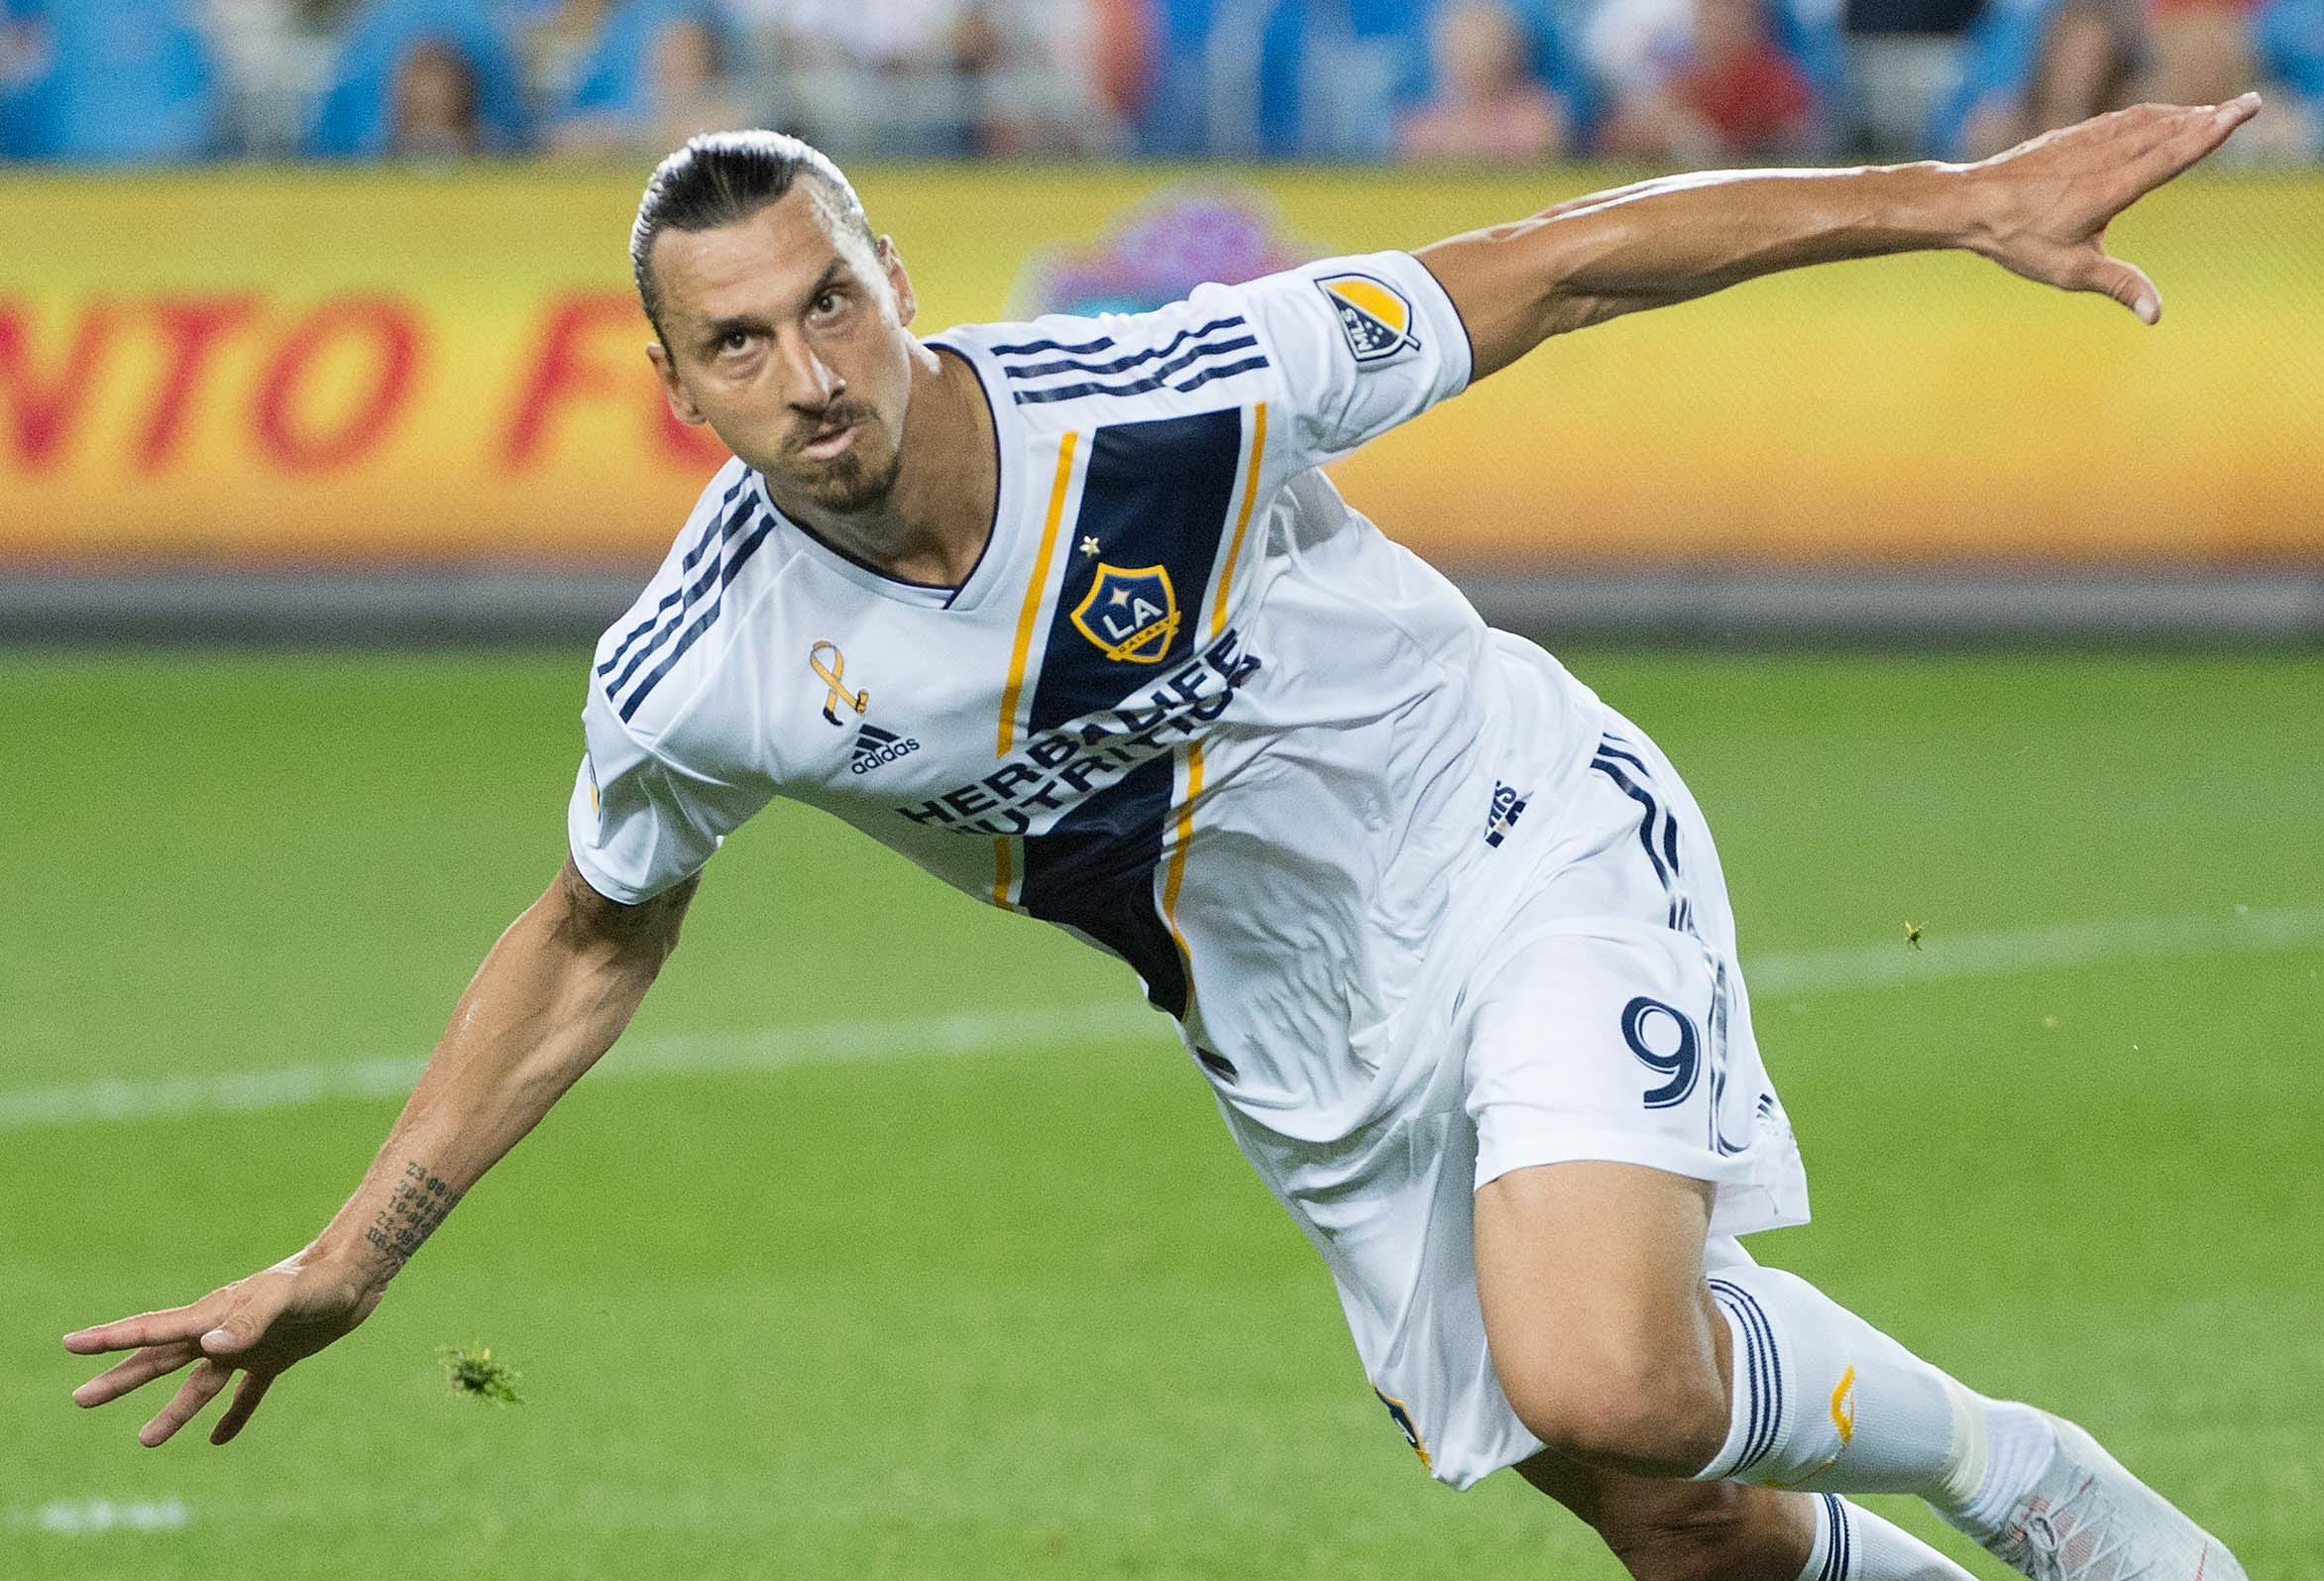 Zlatan Ibrahimovic, scored 22 goals last season, good for second in the league.